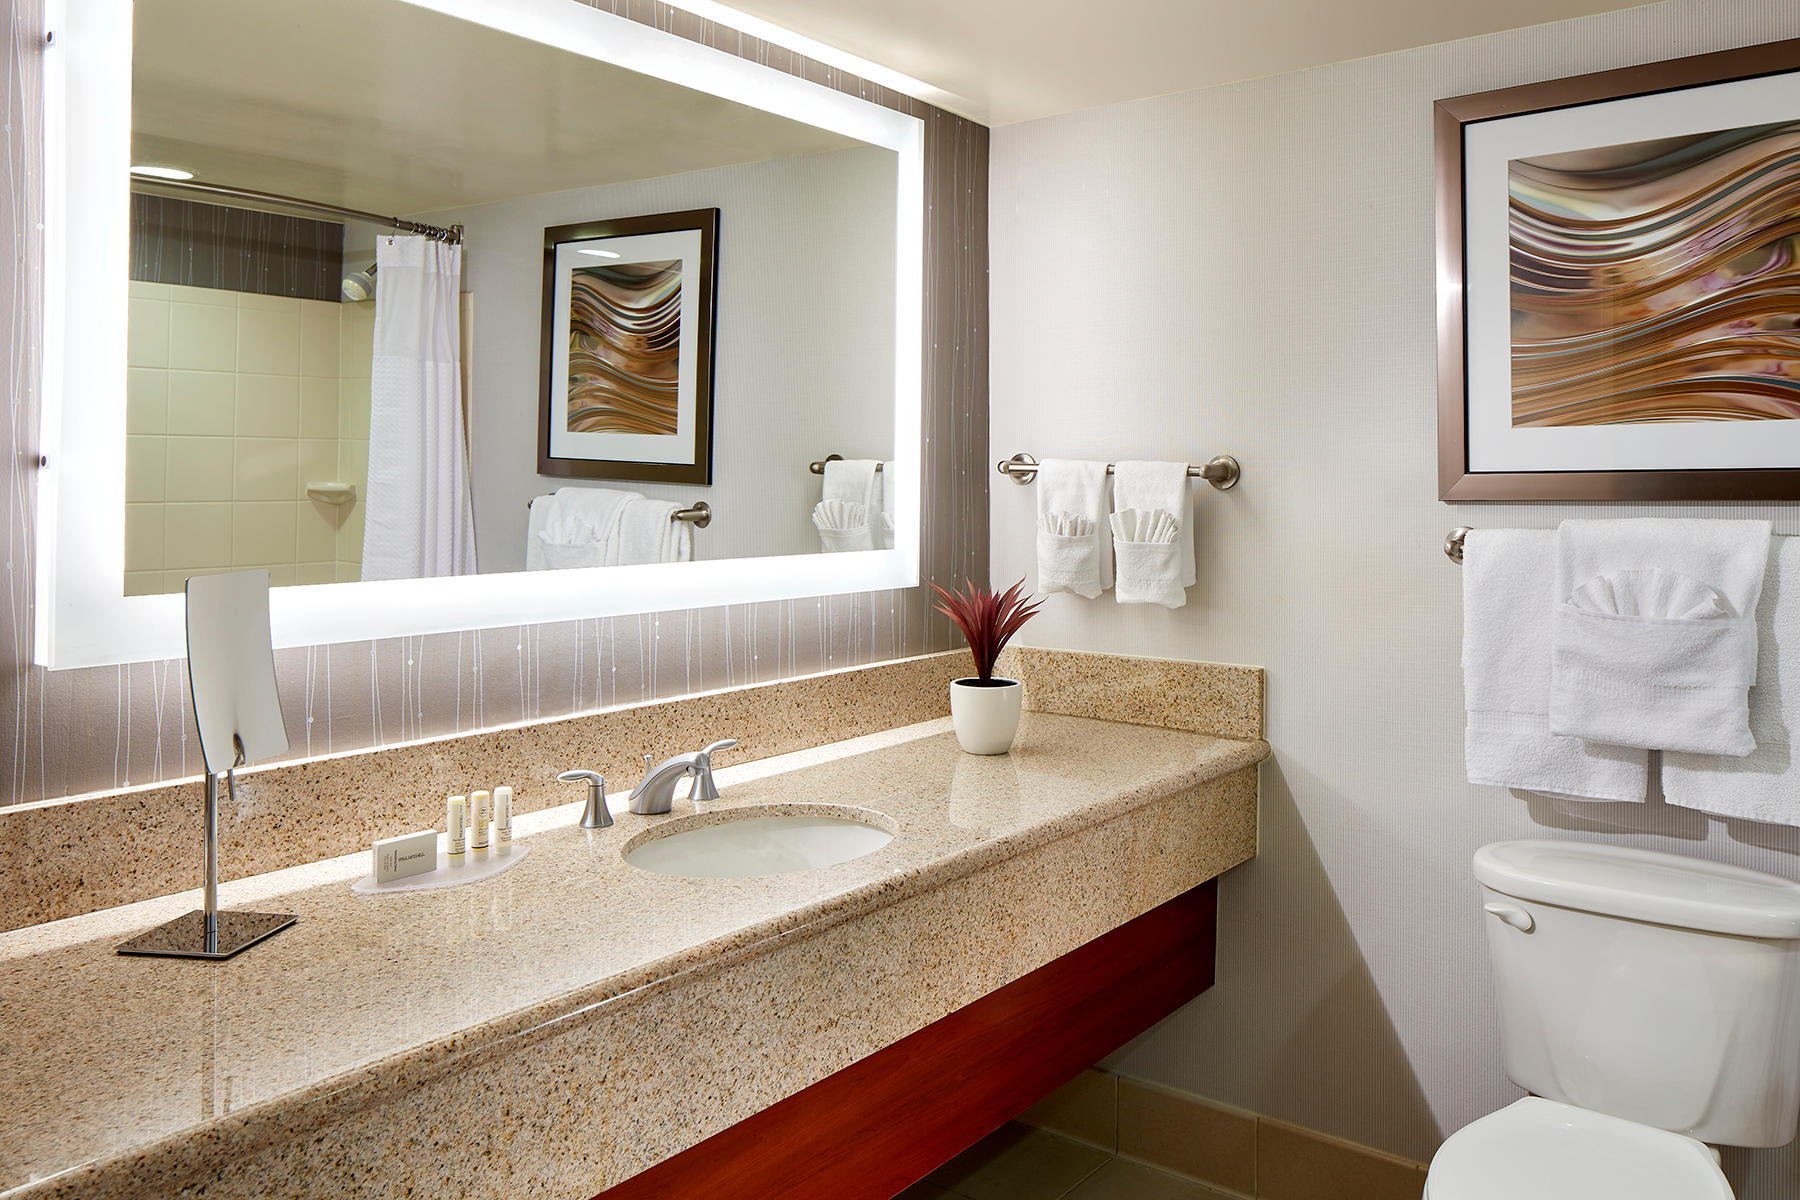 Courtyard by Marriott Vallejo Napa Valley image 12